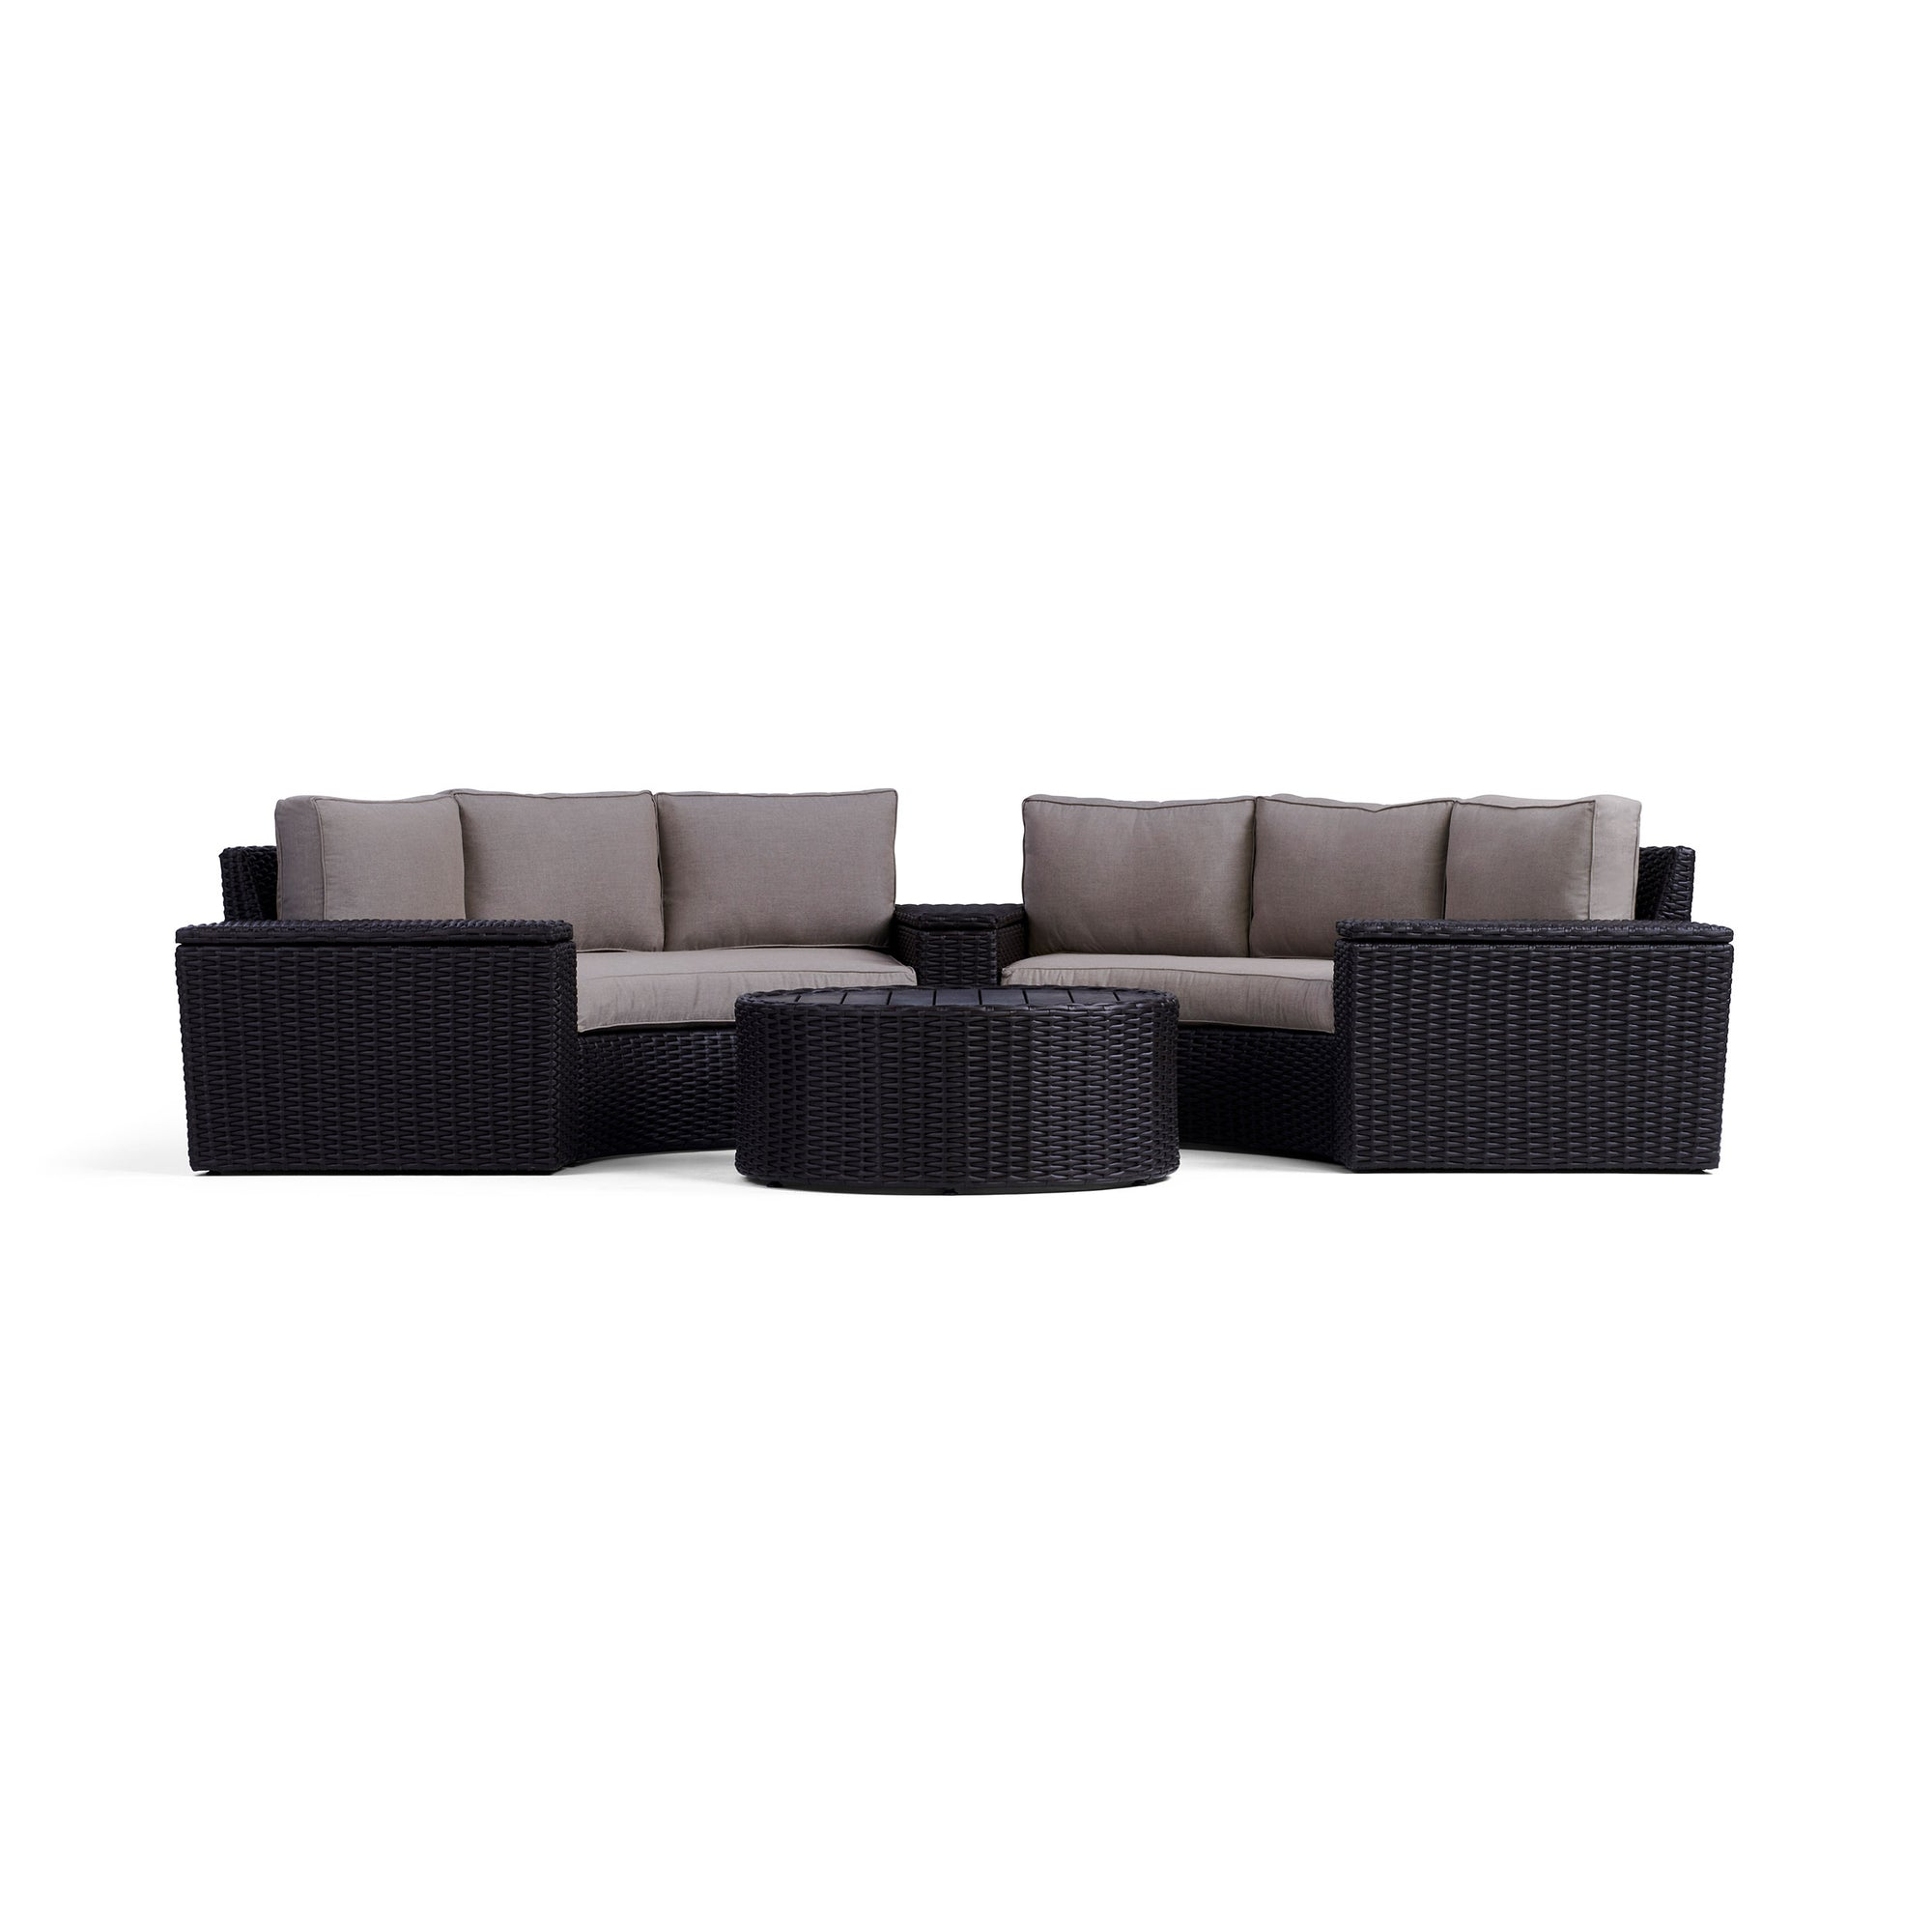 Fine Elliot 6 Piece Round Outdoor Sectional Set Yardbird Cjindustries Chair Design For Home Cjindustriesco